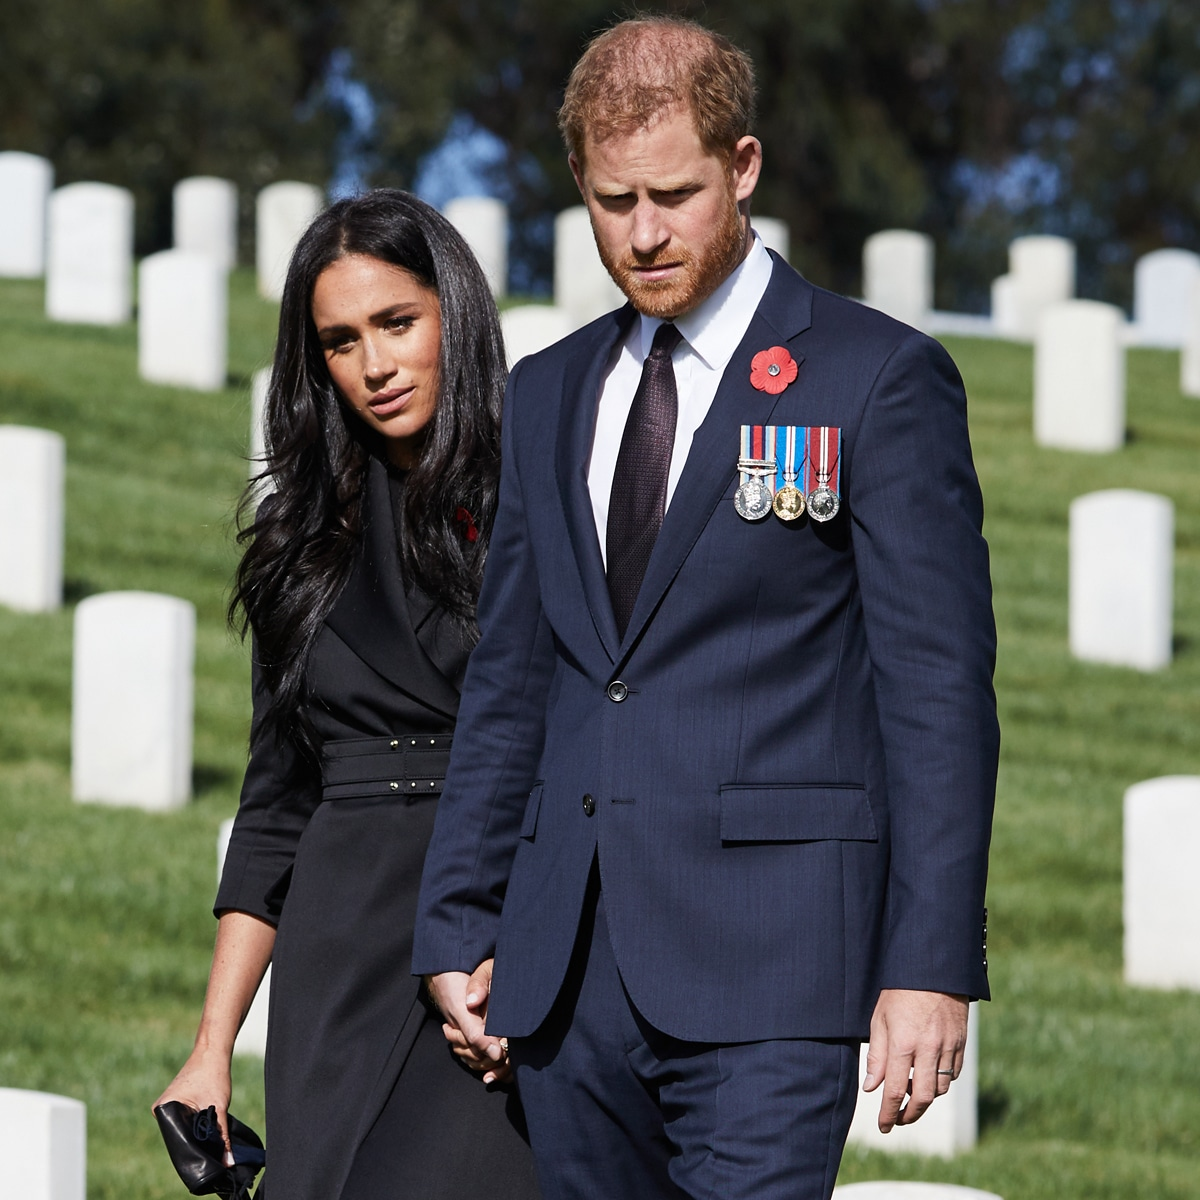 prince harry marks remembrance day after palace denies wreath request e online prince harry marks remembrance day